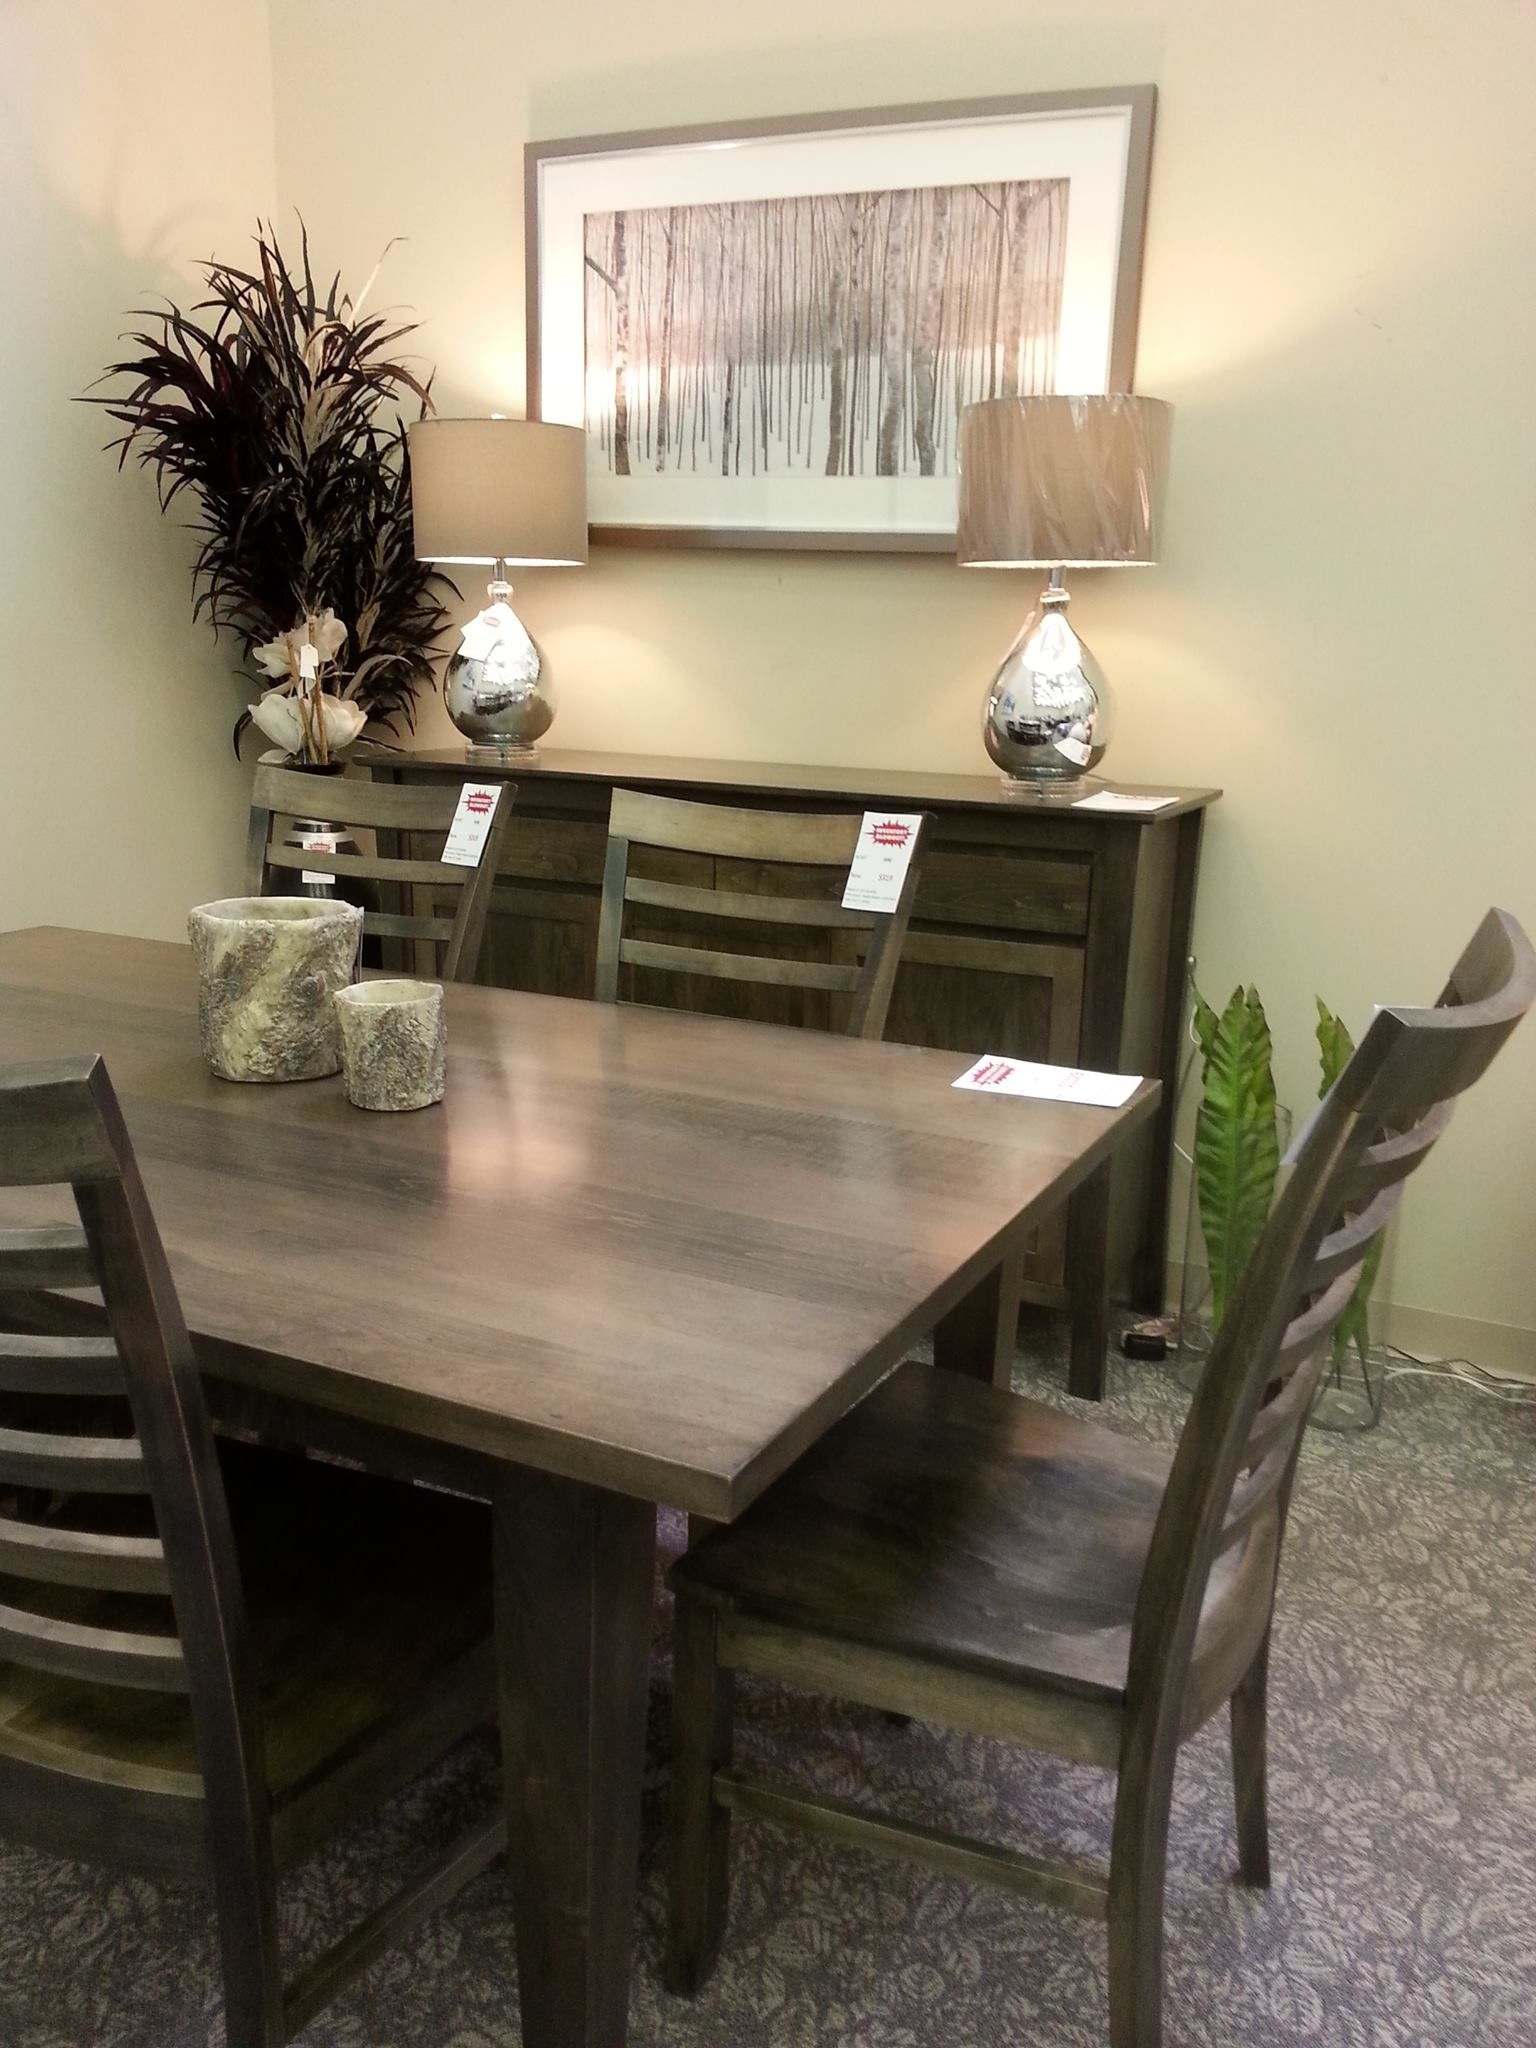 Finished Maple Dining Set In Carbon Stain Tapered Leg Table And Rockland Style Server See Our Dining Sets In Dinning Room Furniture Home Decor Custom Furniture